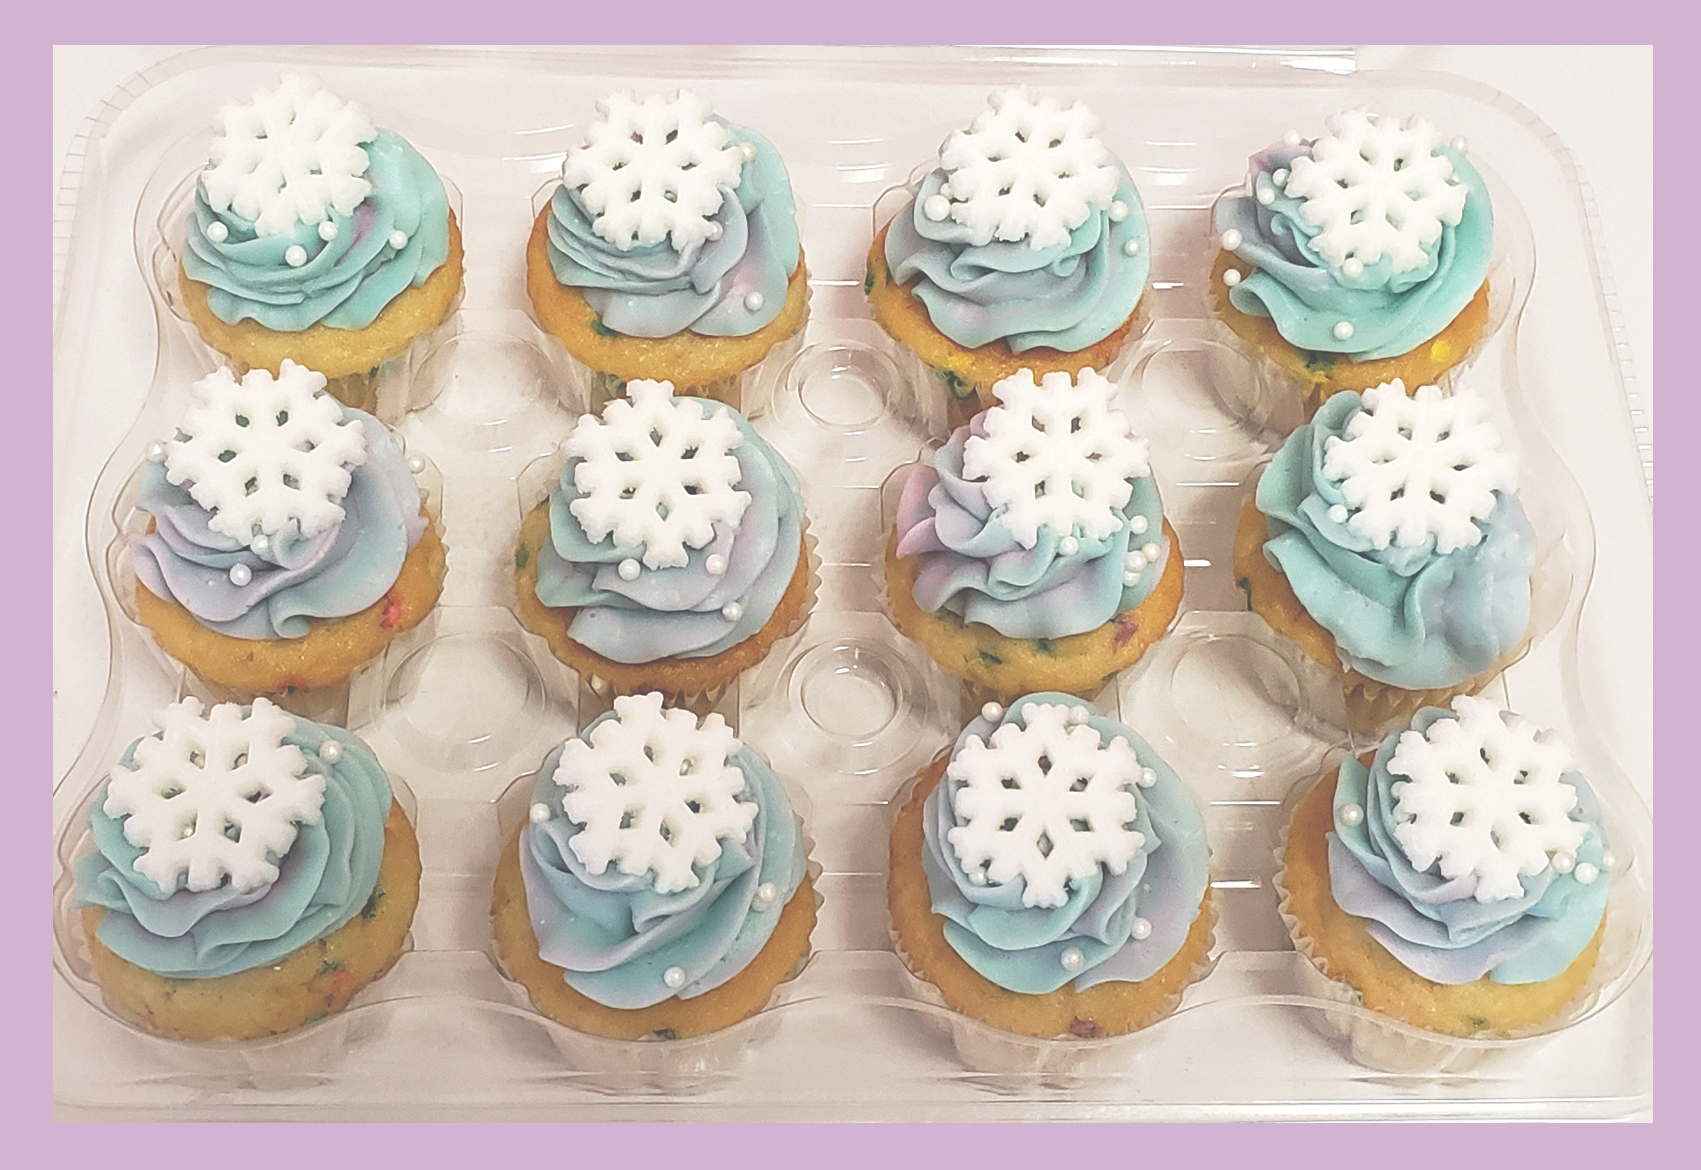 Frozen Theme Watercolor Cupcakes